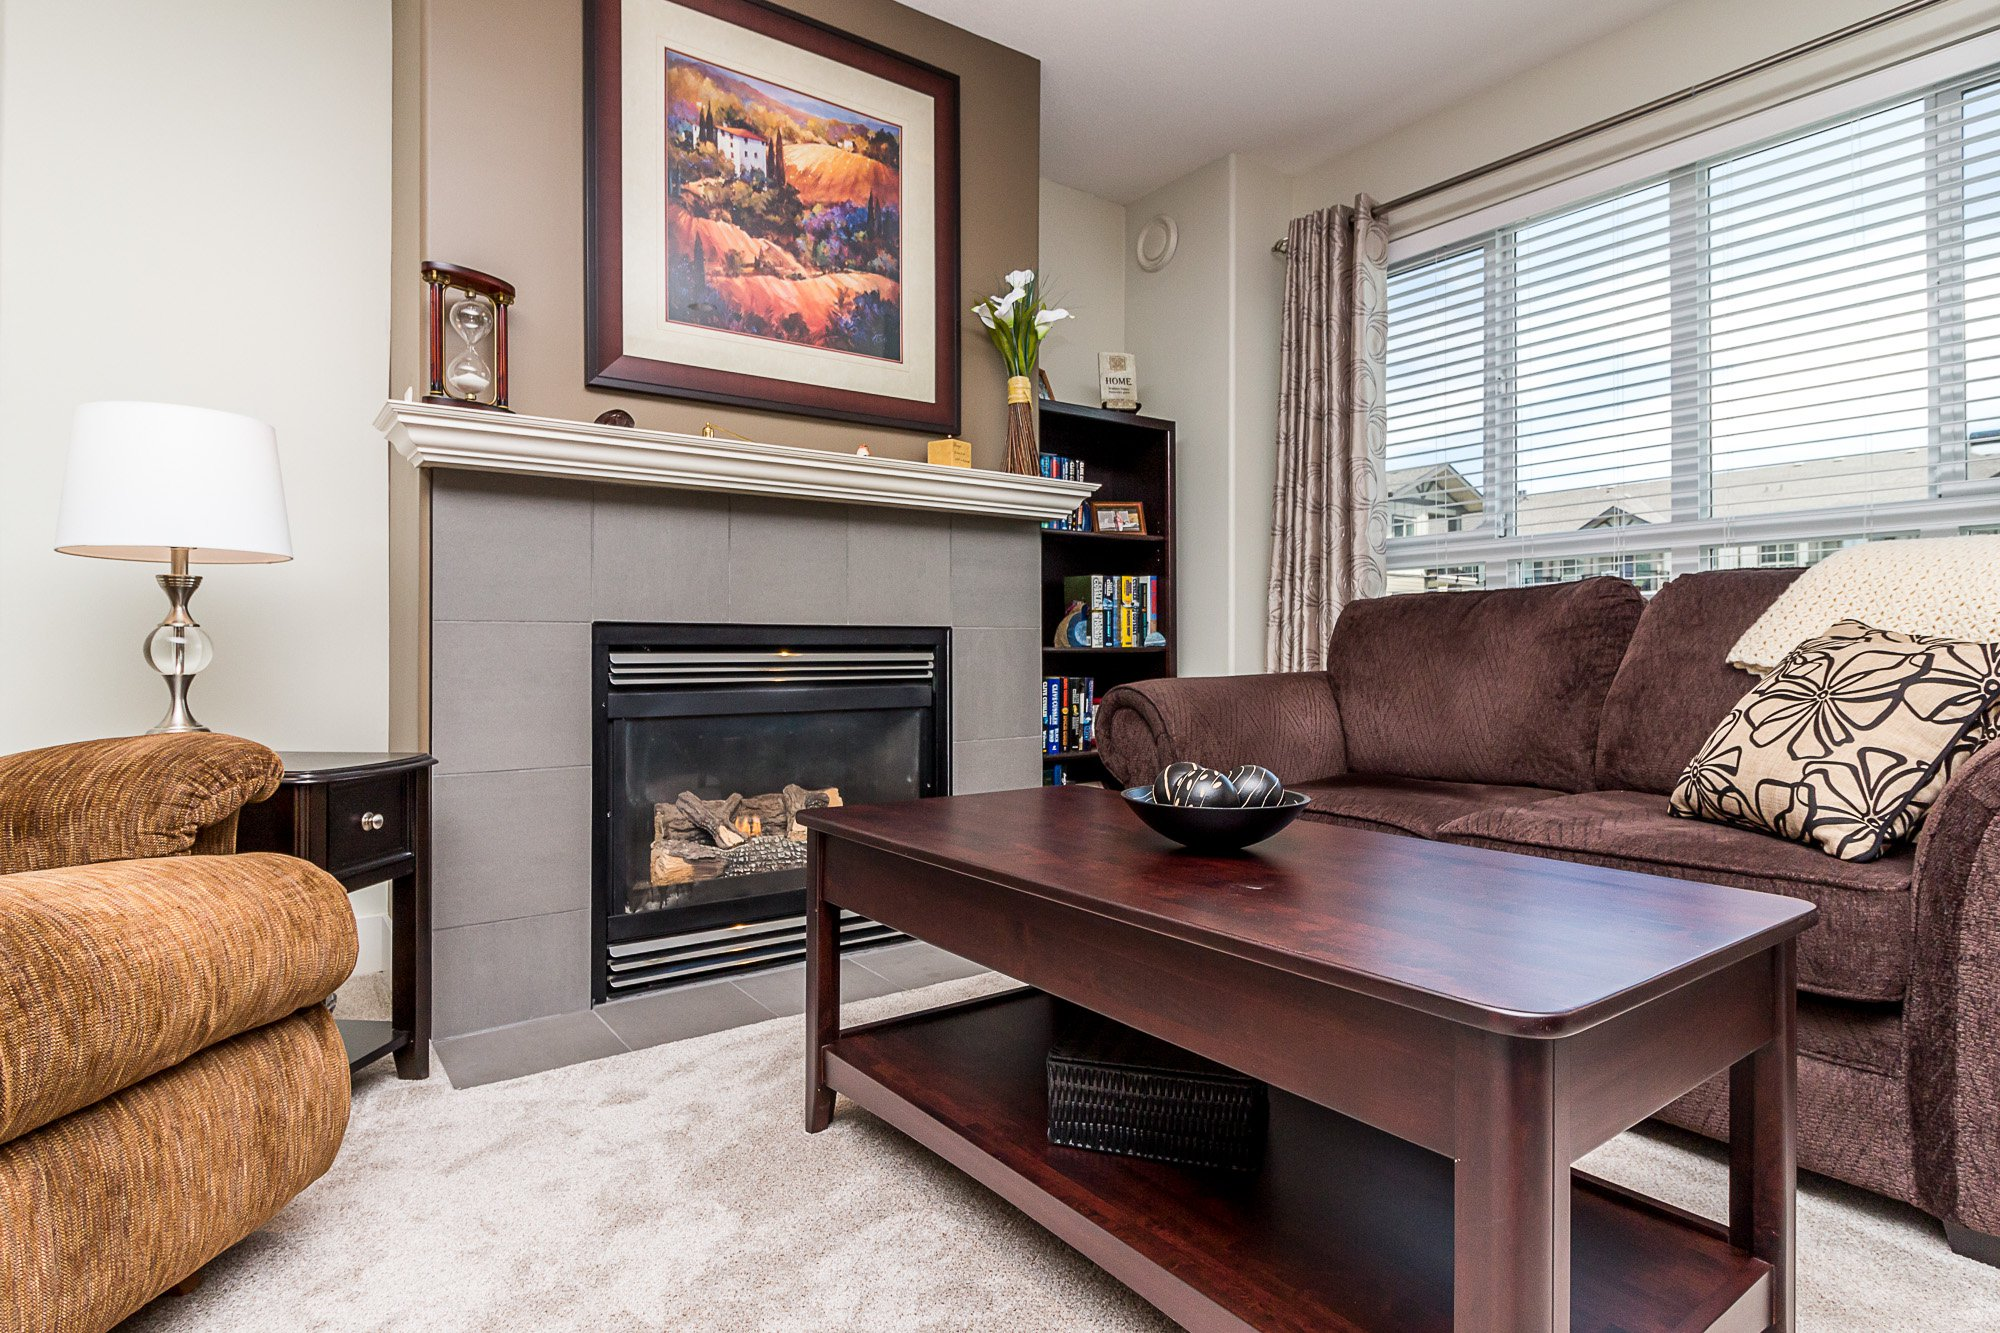 """Photo 2: Photos: 412 22022 49 Avenue in Langley: Murrayville Condo for sale in """"Murray Green"""" : MLS®# R2266359"""